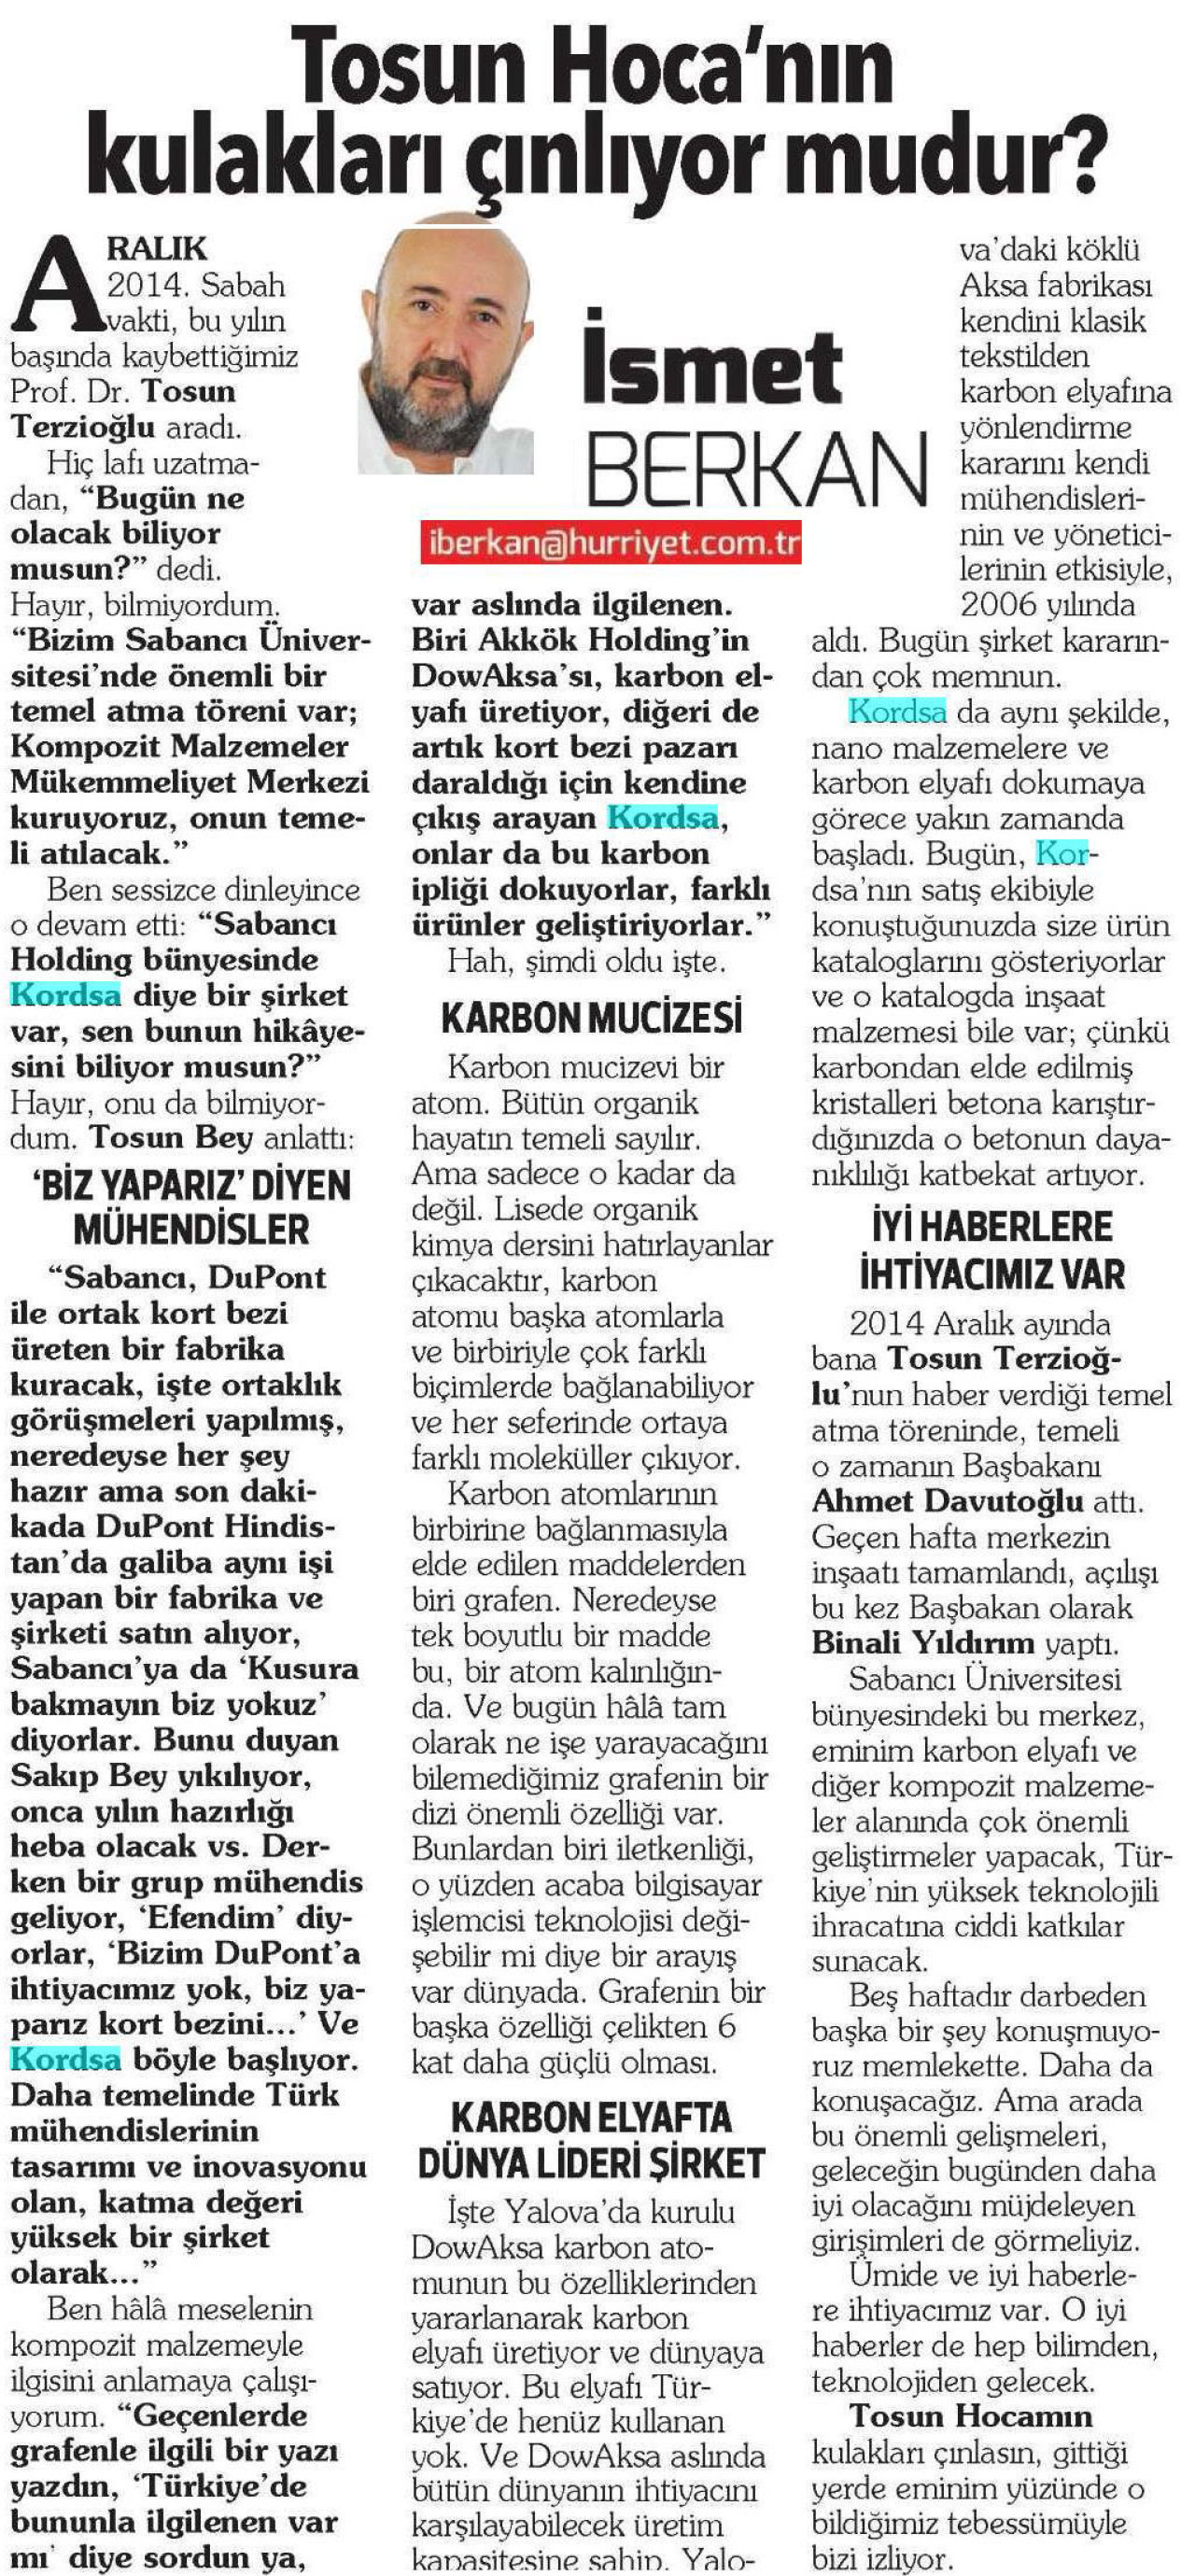 İsmet Berkan article on Composite Technologies Center of Excellence Opening Ceremony